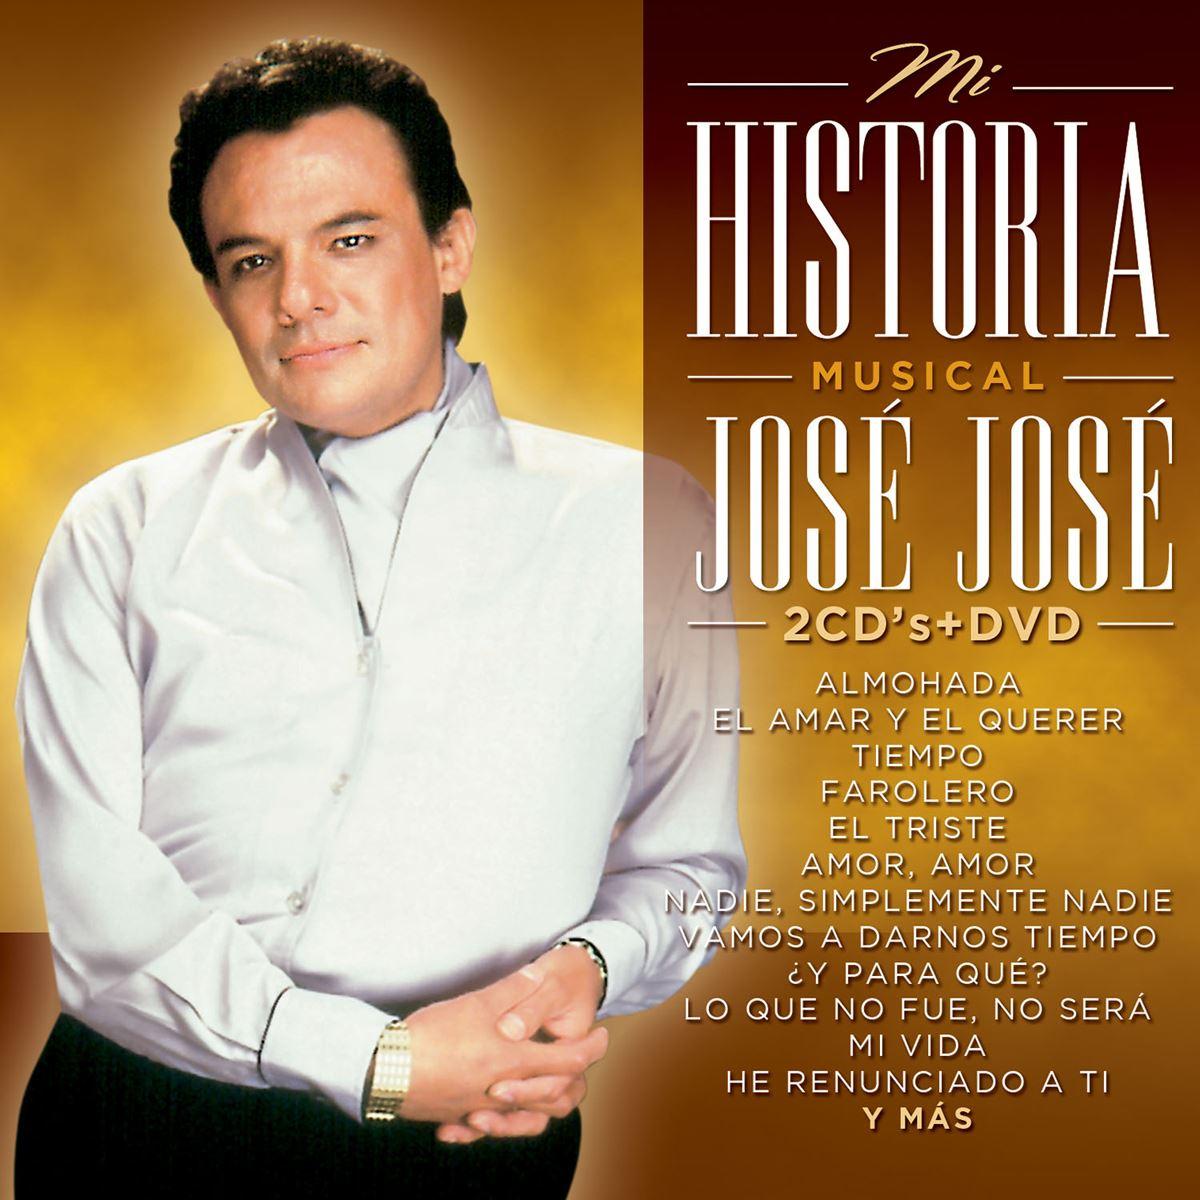 Cd josé josé mi historia musical  - Sanborns